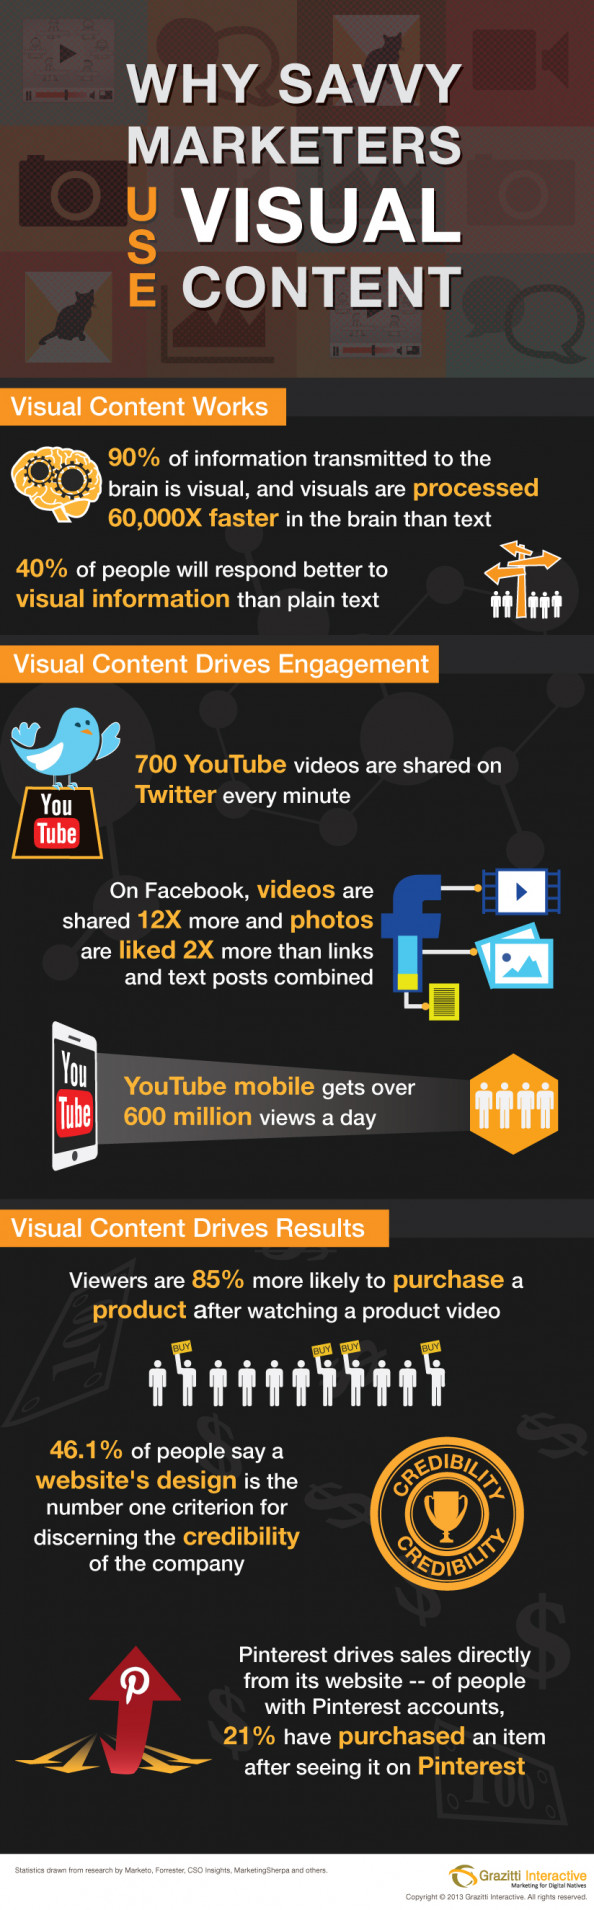 Why Savvy Marketers Use VISUAL Content ? [Infographic] Infographic